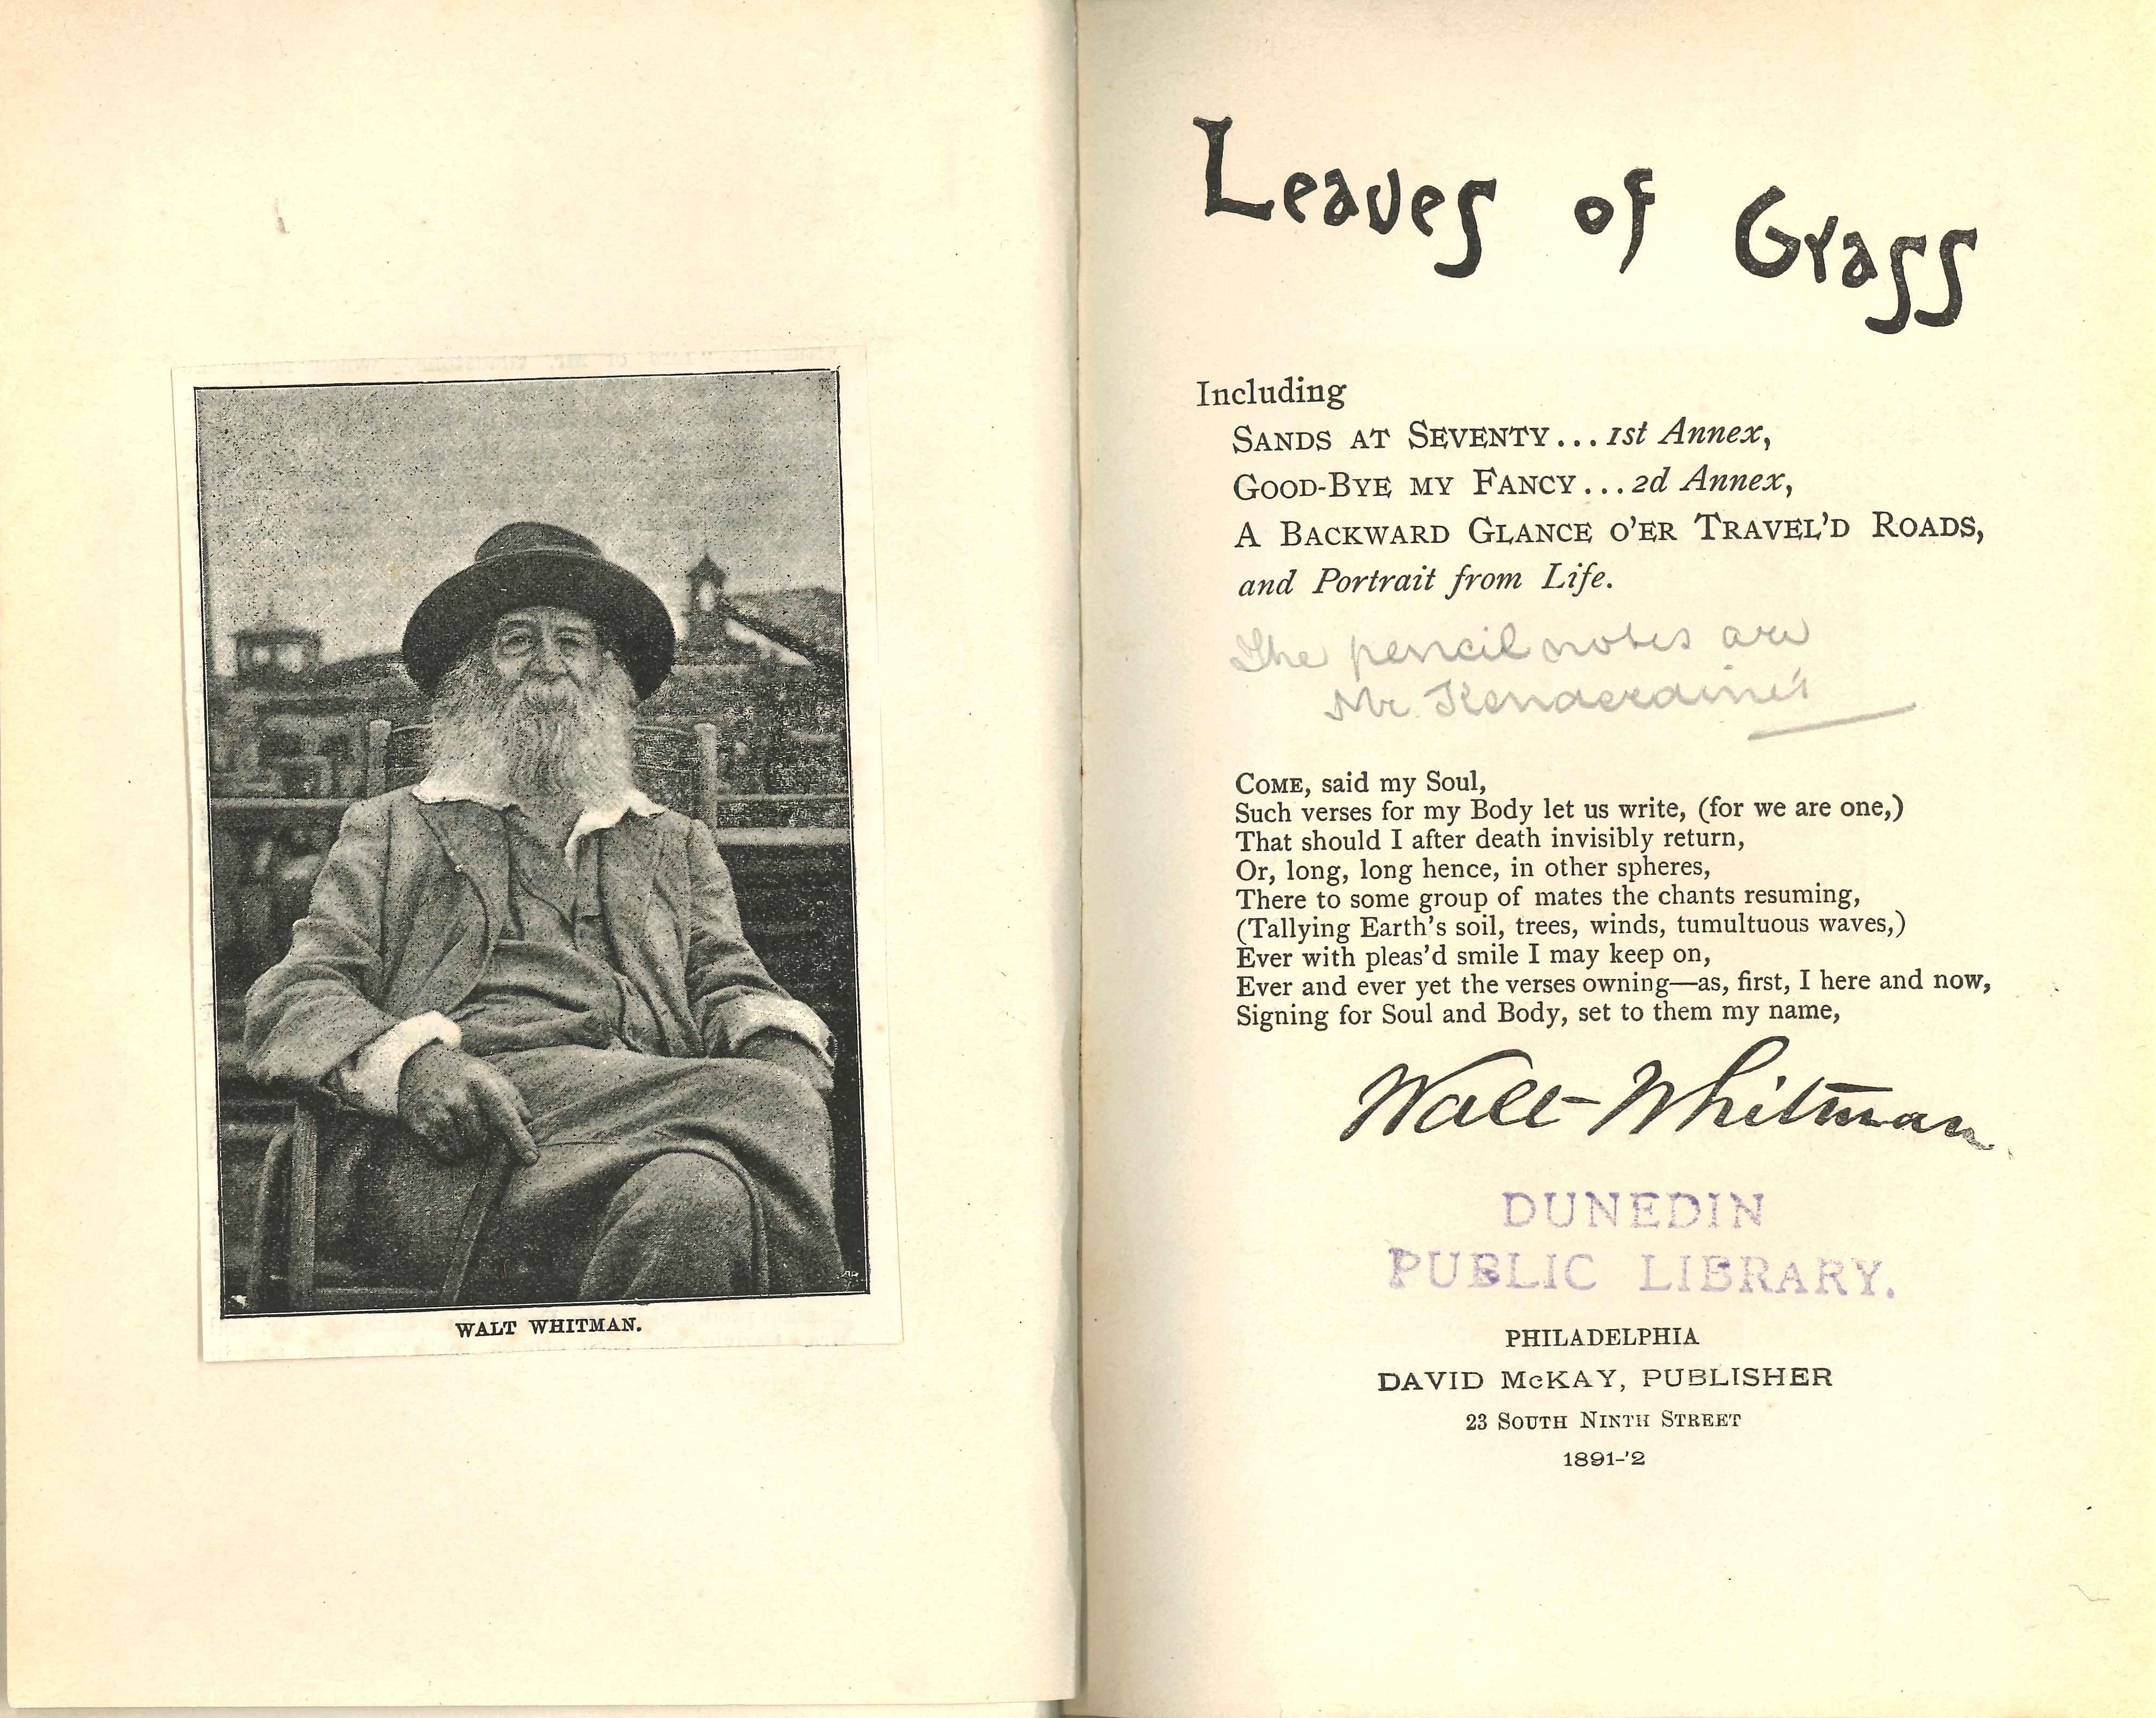 Walt Whitman. Leaves of Grass: Including Sands at Seventy -- 1st Annex, Good-Bye My Fancy -- 2d Annex, A Backward Glance O'er Travel'd Roads, and Portrait from Life. Philadelphia: David McKay, 1891-92.